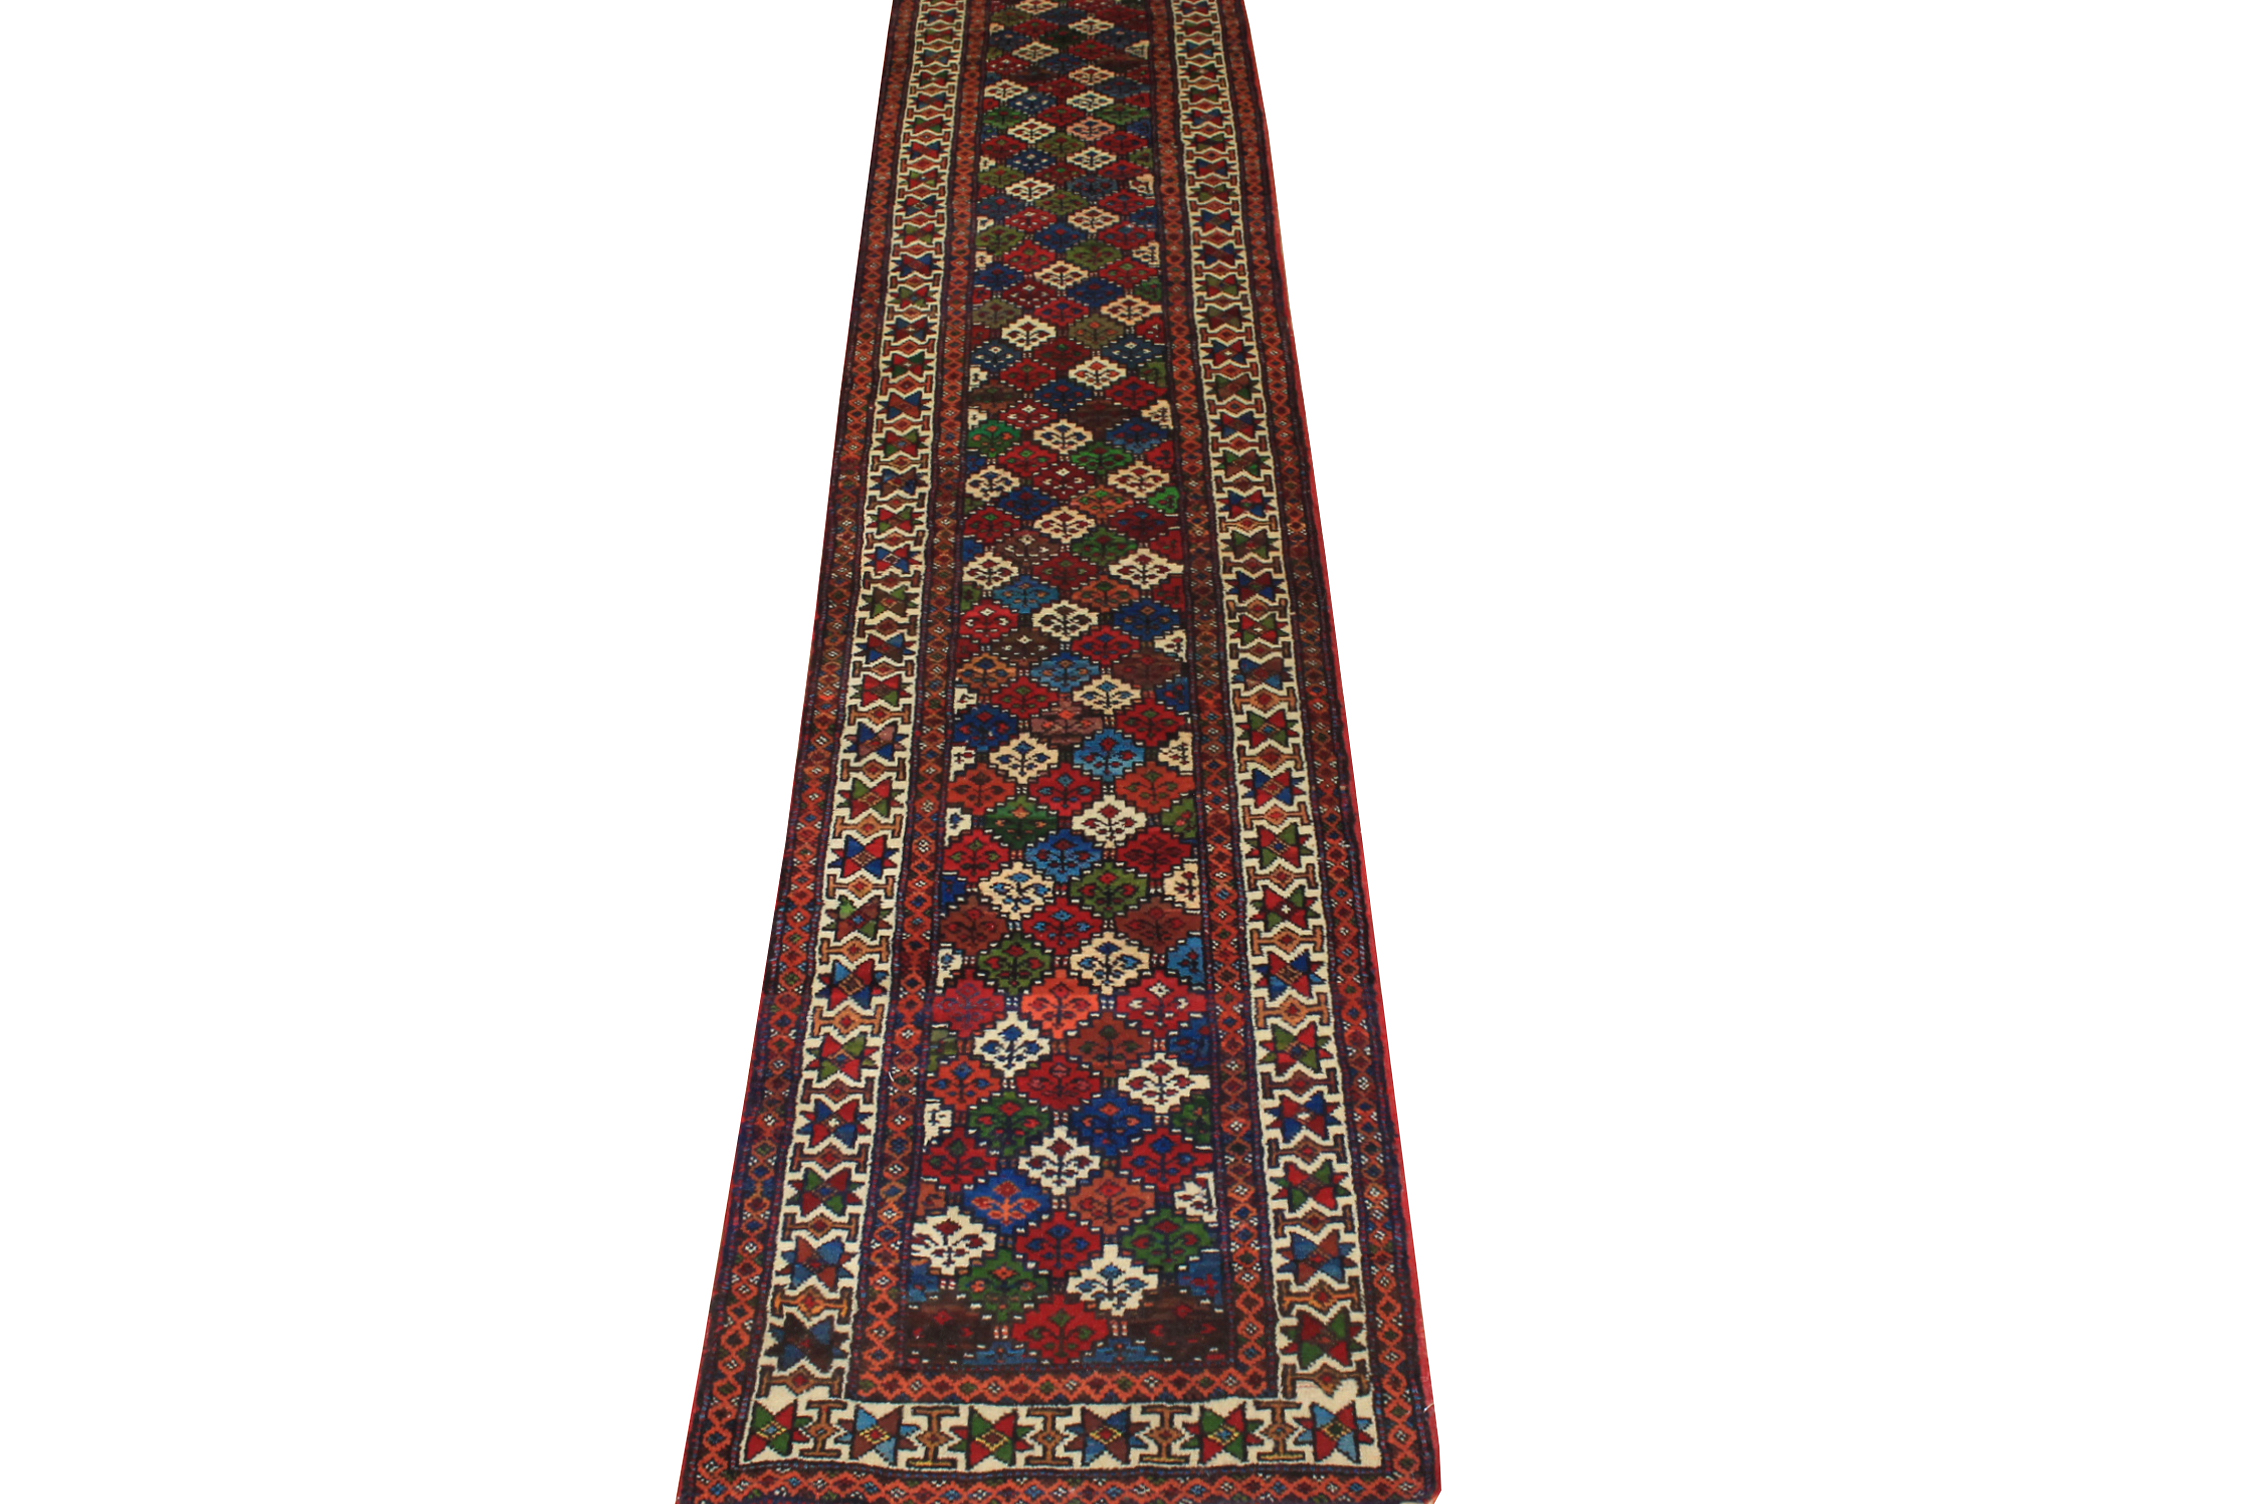 12 ft. Runner Traditional Hand Knotted Wool Area Rug - MR19441